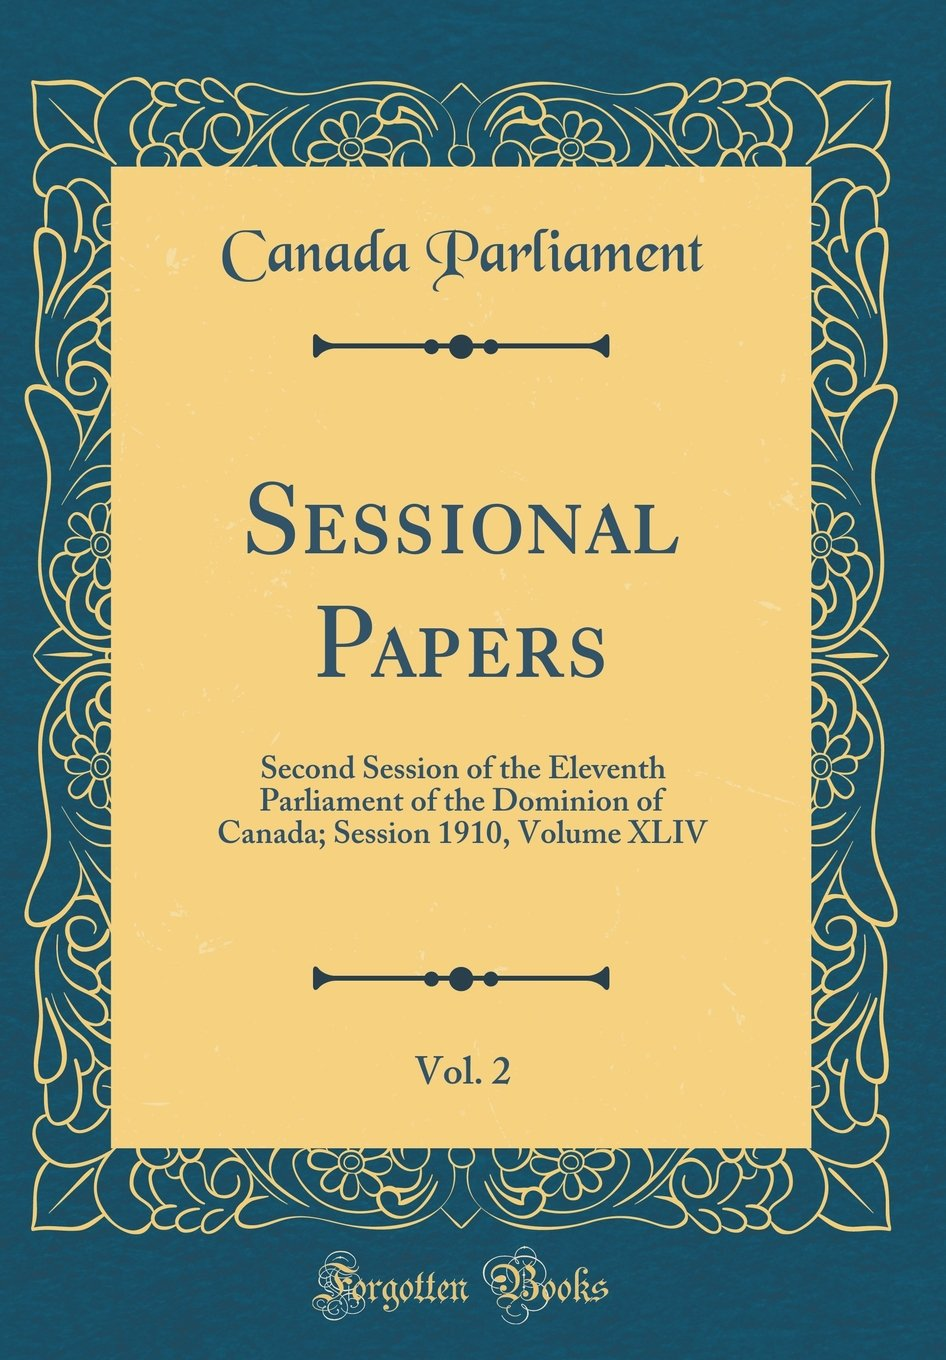 Sessional Papers, Vol. 2: Second Session of the Eleventh Parliament of the Dominion of Canada; Session 1910, Volume XLIV (Classic Reprint) pdf